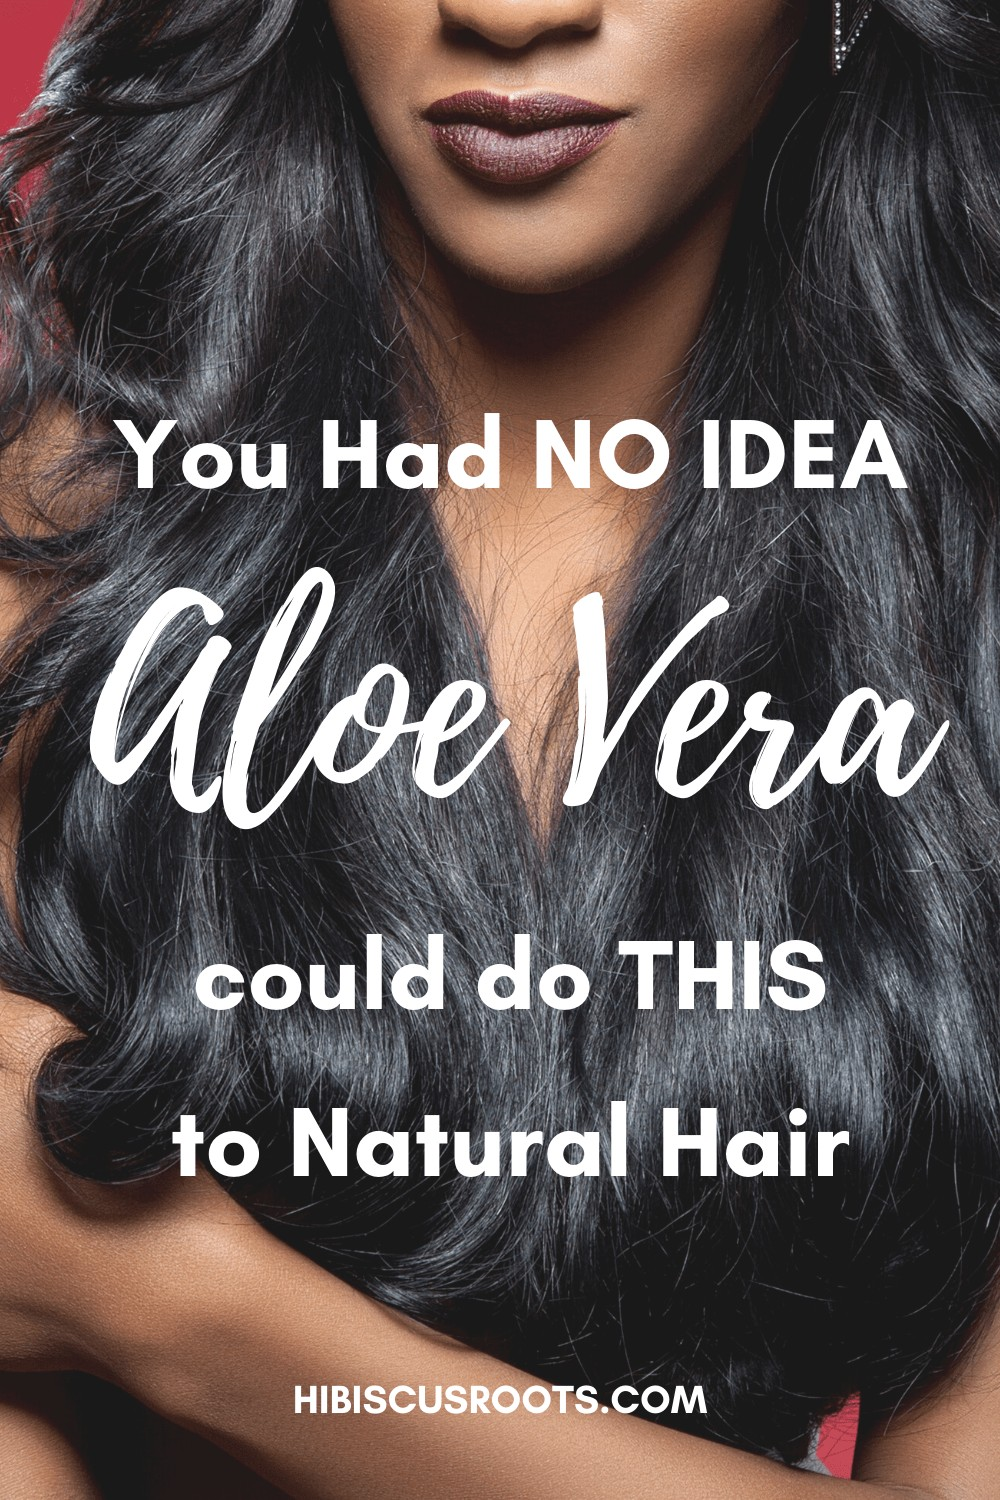 5 Best Ways to Use Aloe Vera for Natural Hair Growth! (2021)